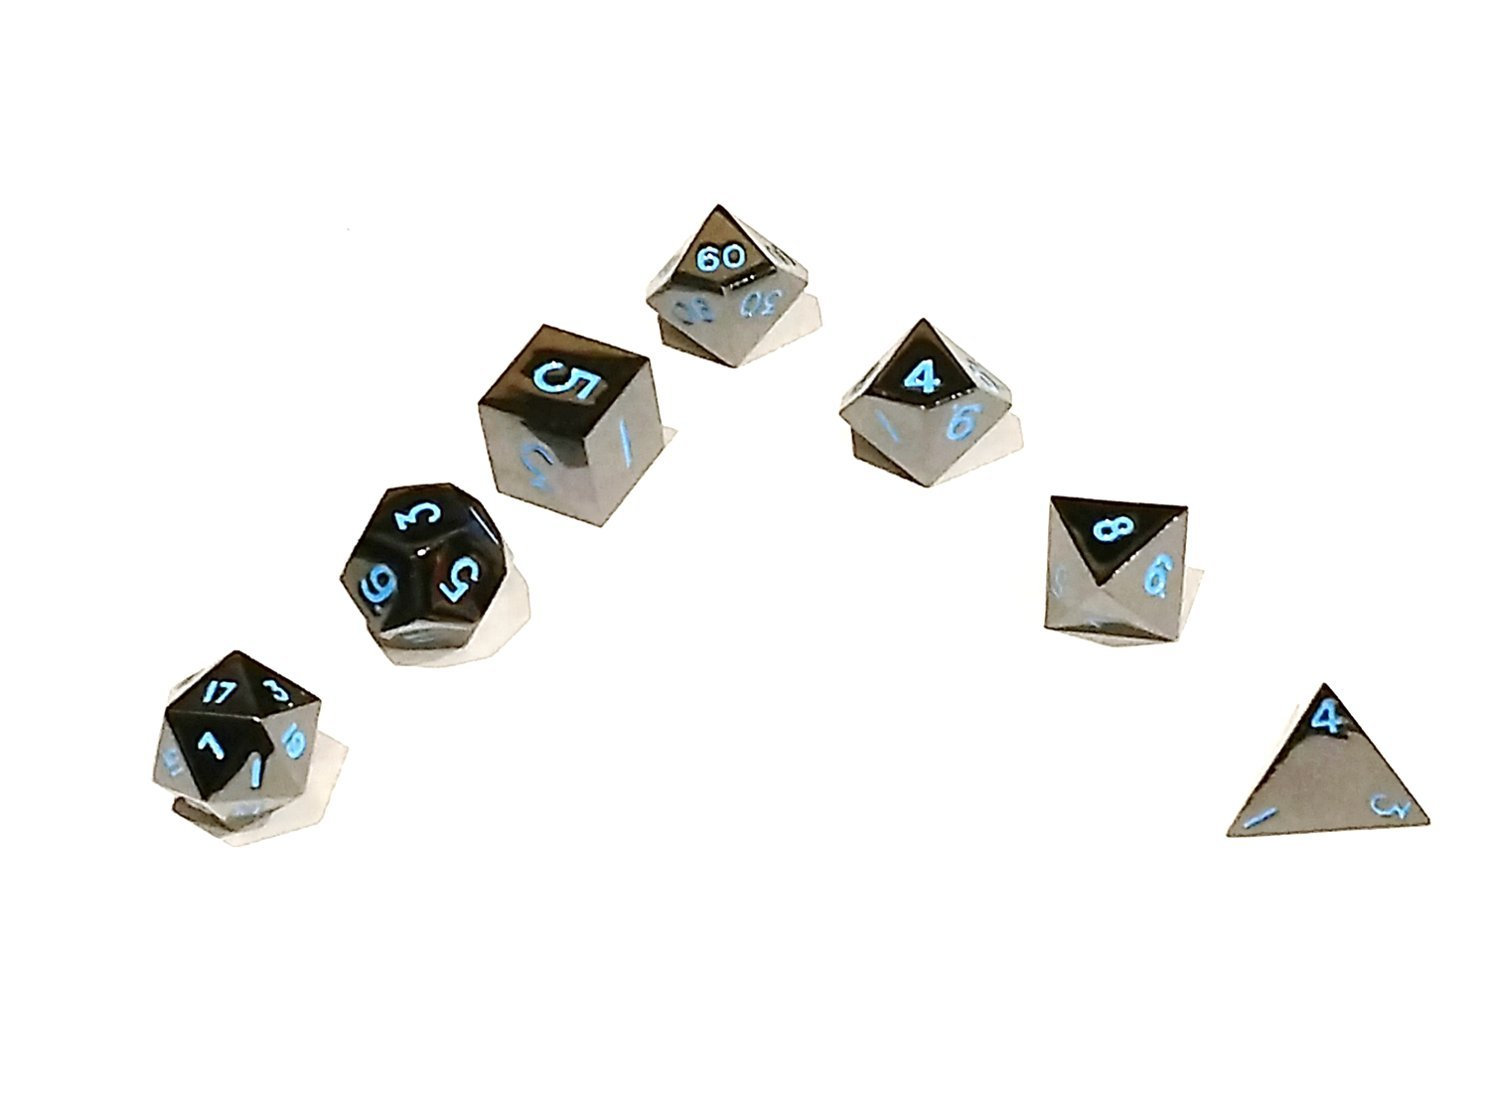 Dice Dungeons Black Frost Metal 7pc Dice Set With Bag for D&D, Pathfinder, and other Role Playing Games.